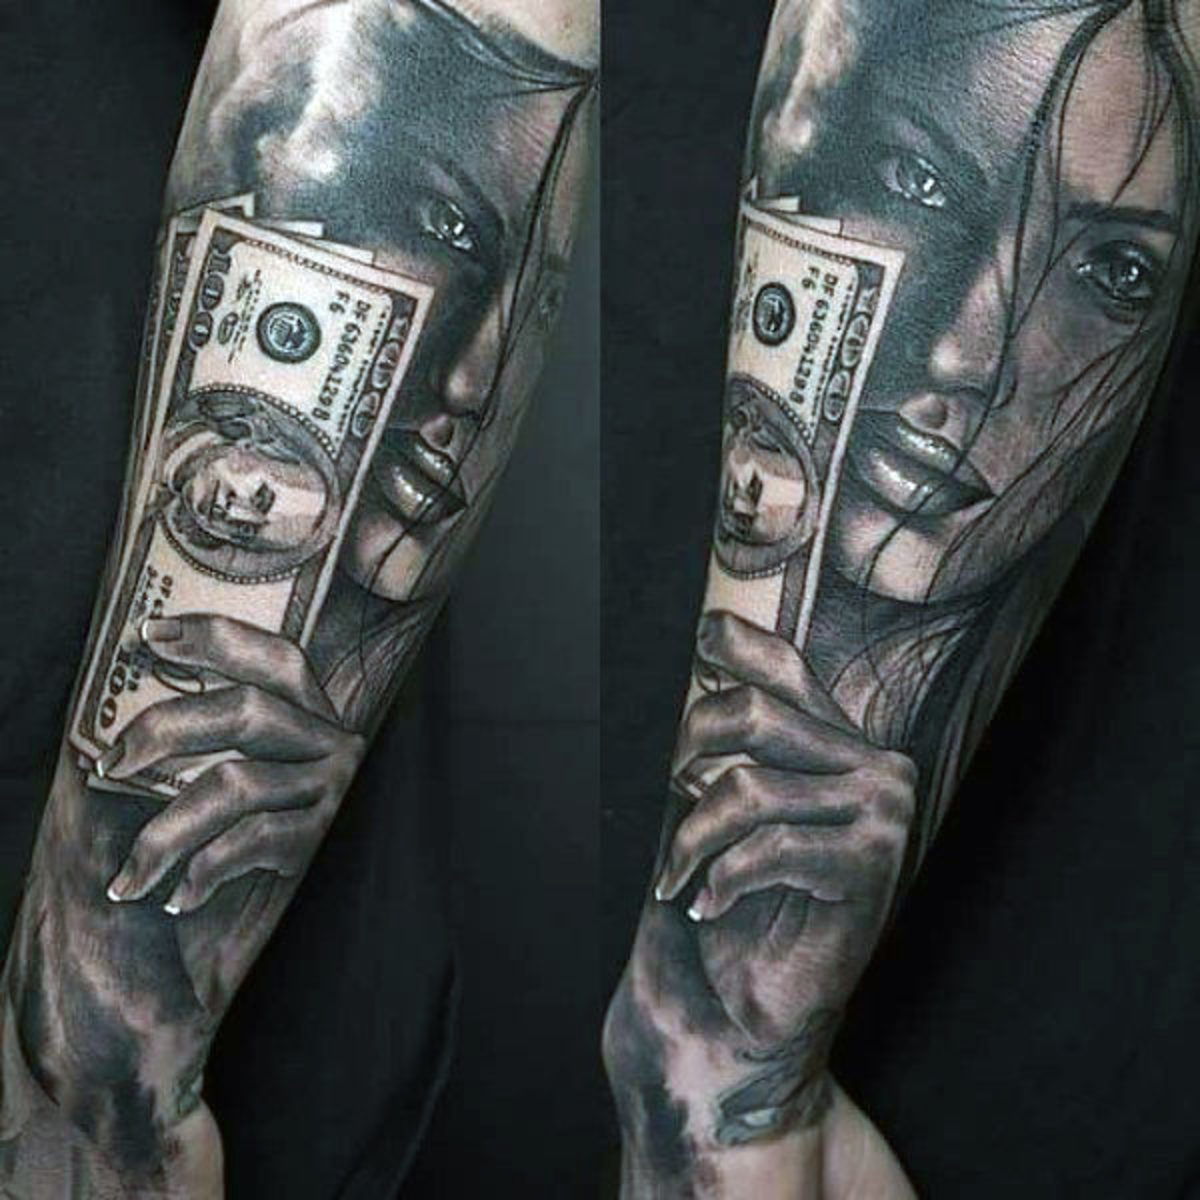 How Much Should You Tip Your Tattoo Artist? - Tattoo Ideas, Artists ...